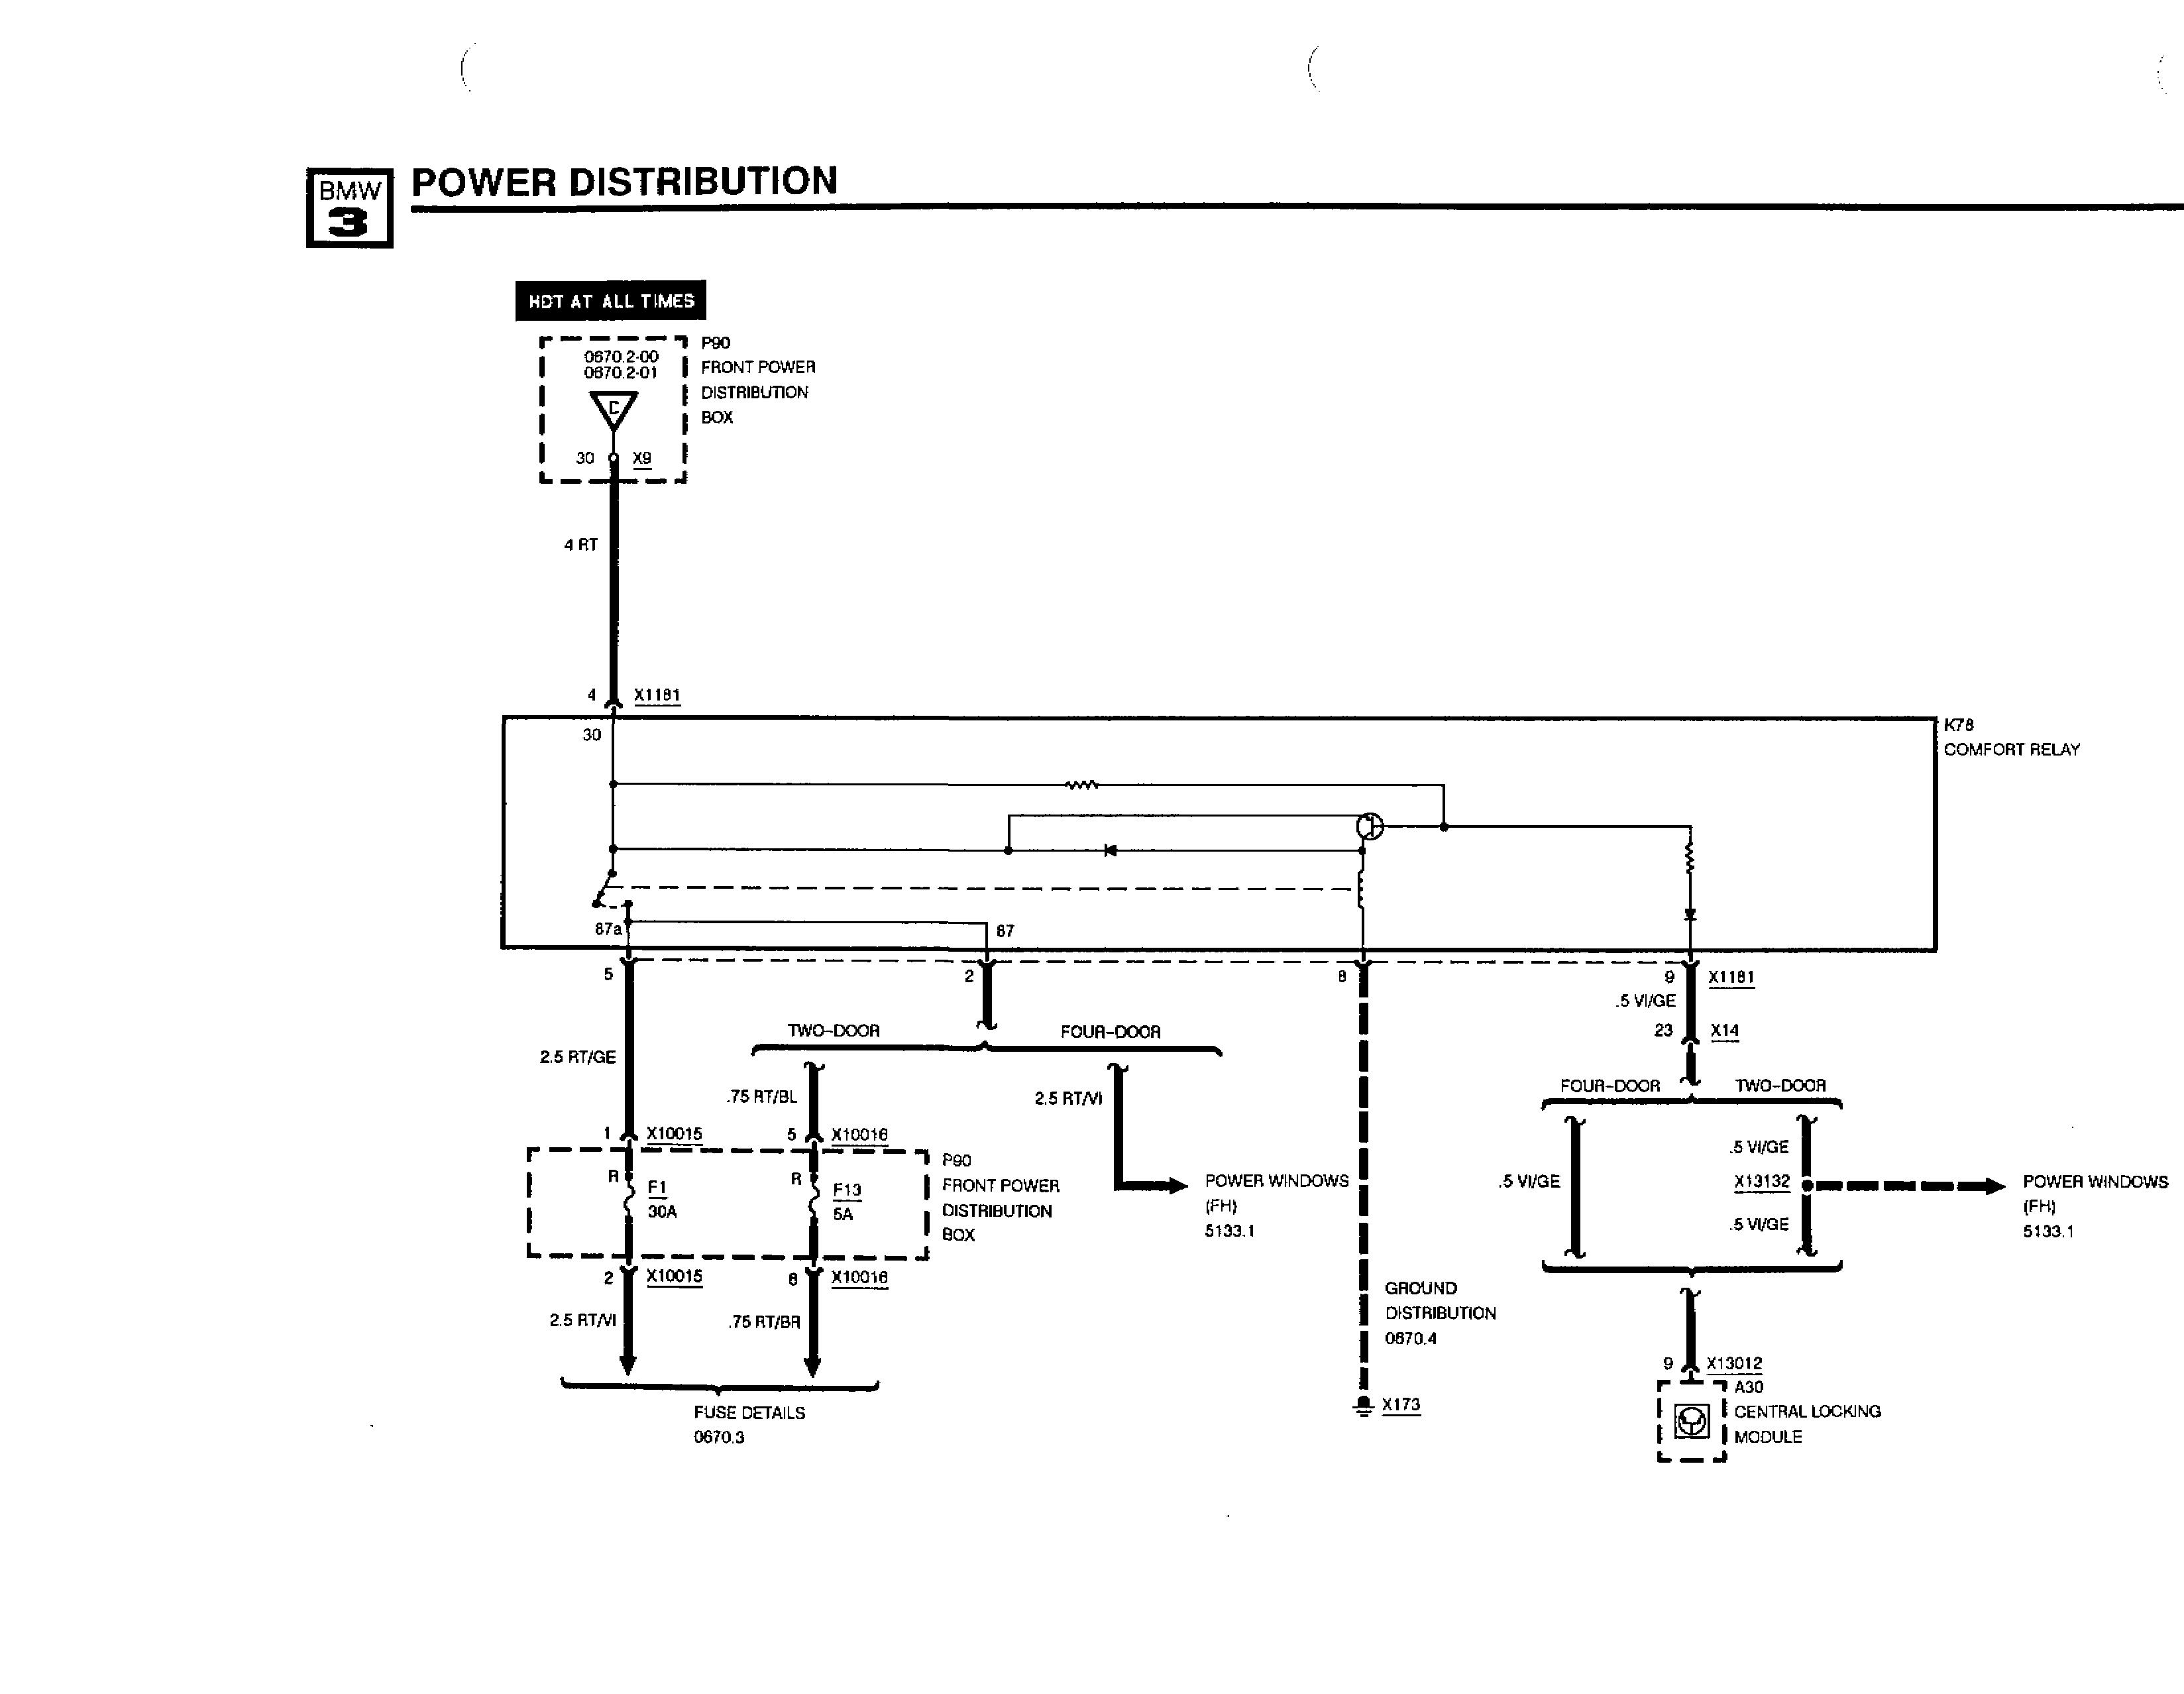 similiar 2000 bmw e53 wiring diagram keywords diagram as well bmw fort relay wiring diagram on 2000 bmw e53 wiring